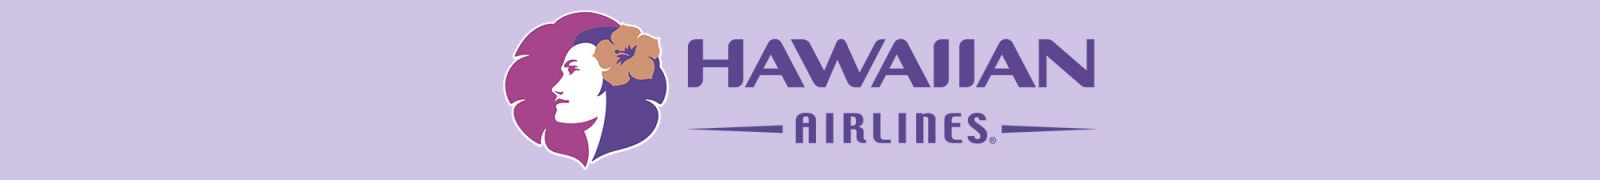 hawaiian airlines banners